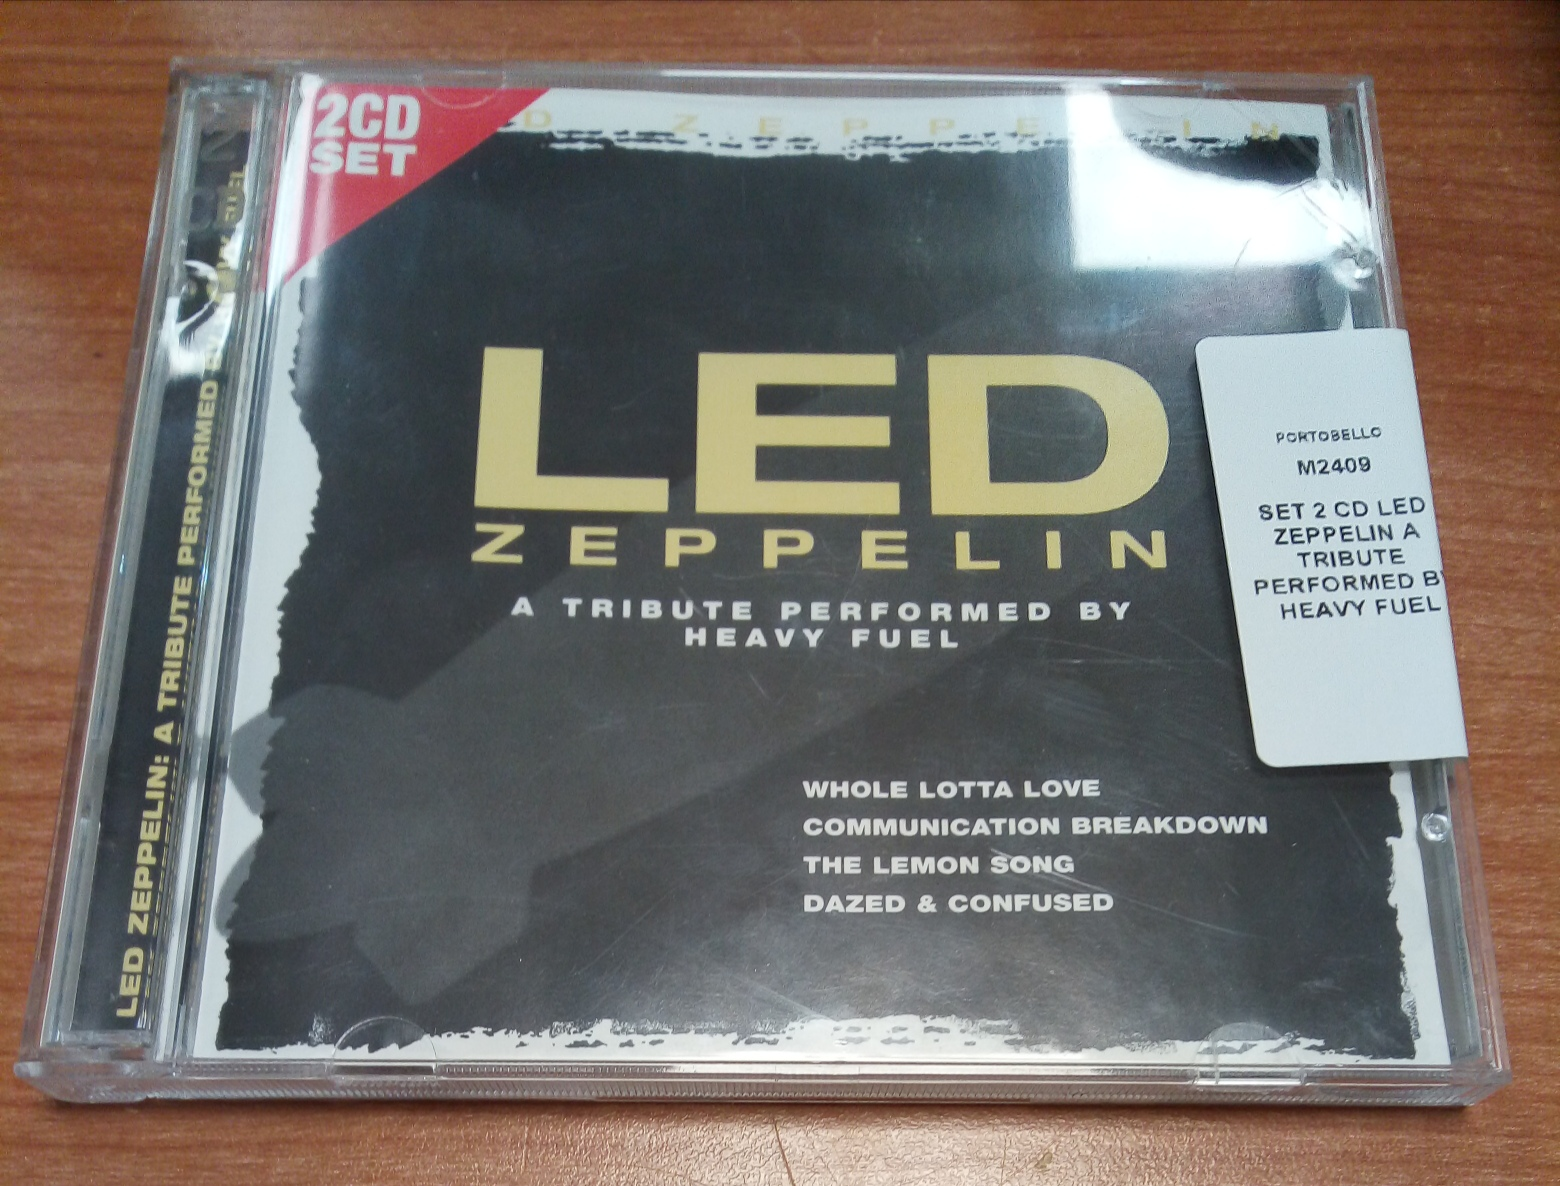 SET 2 CD LED ZEPPELIN A TRIBUTE PERFORMED BY HEAVY FUEL